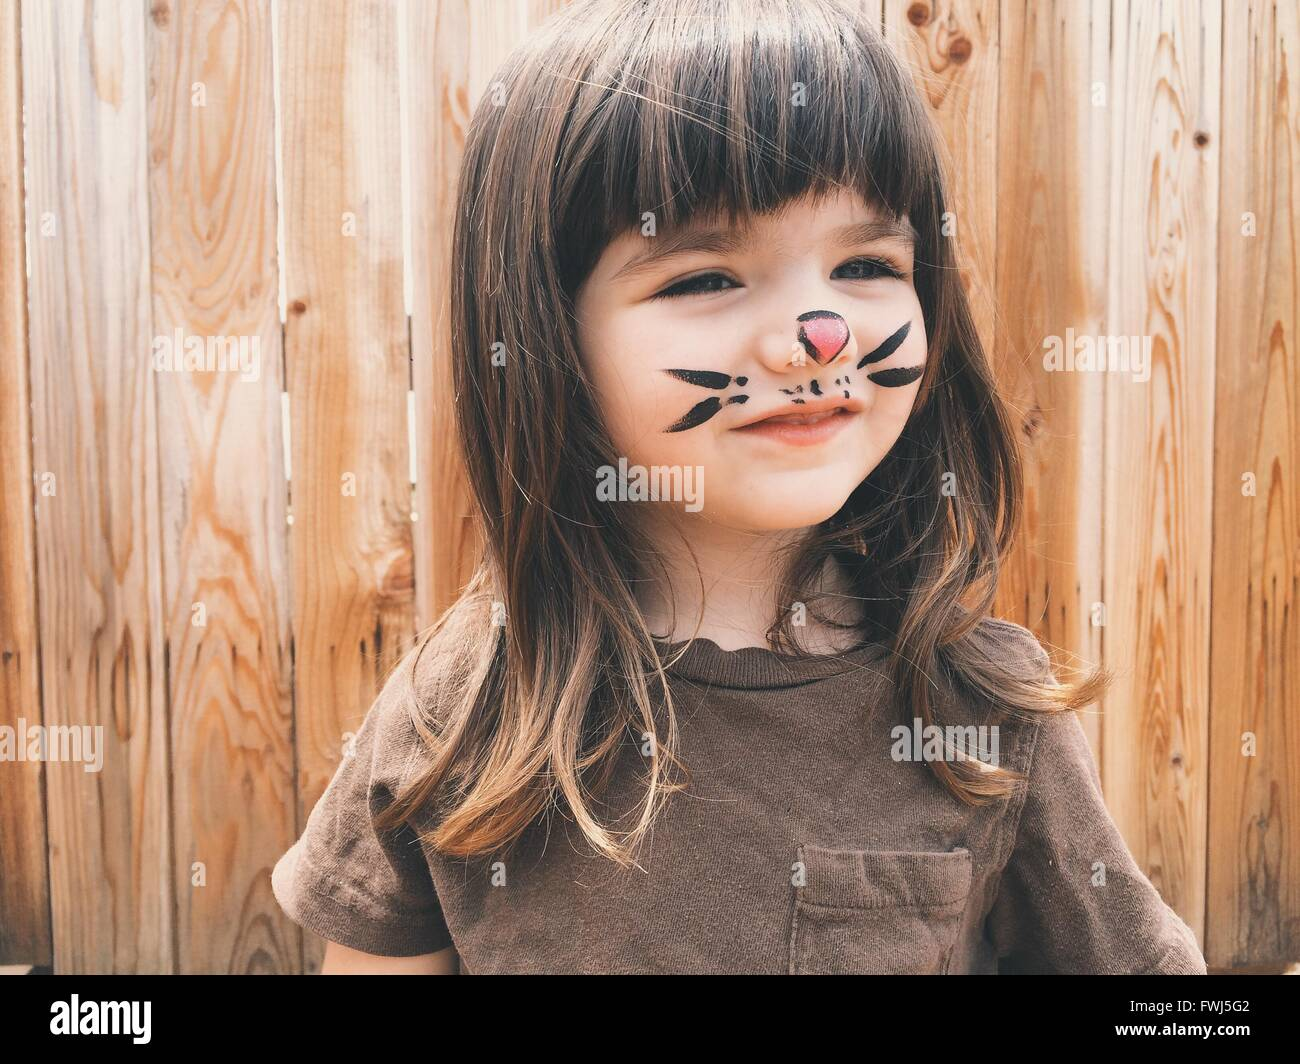 Close-Up Of Smiling Cute Girl With Painting On Face Standing Outdoors - Stock Image